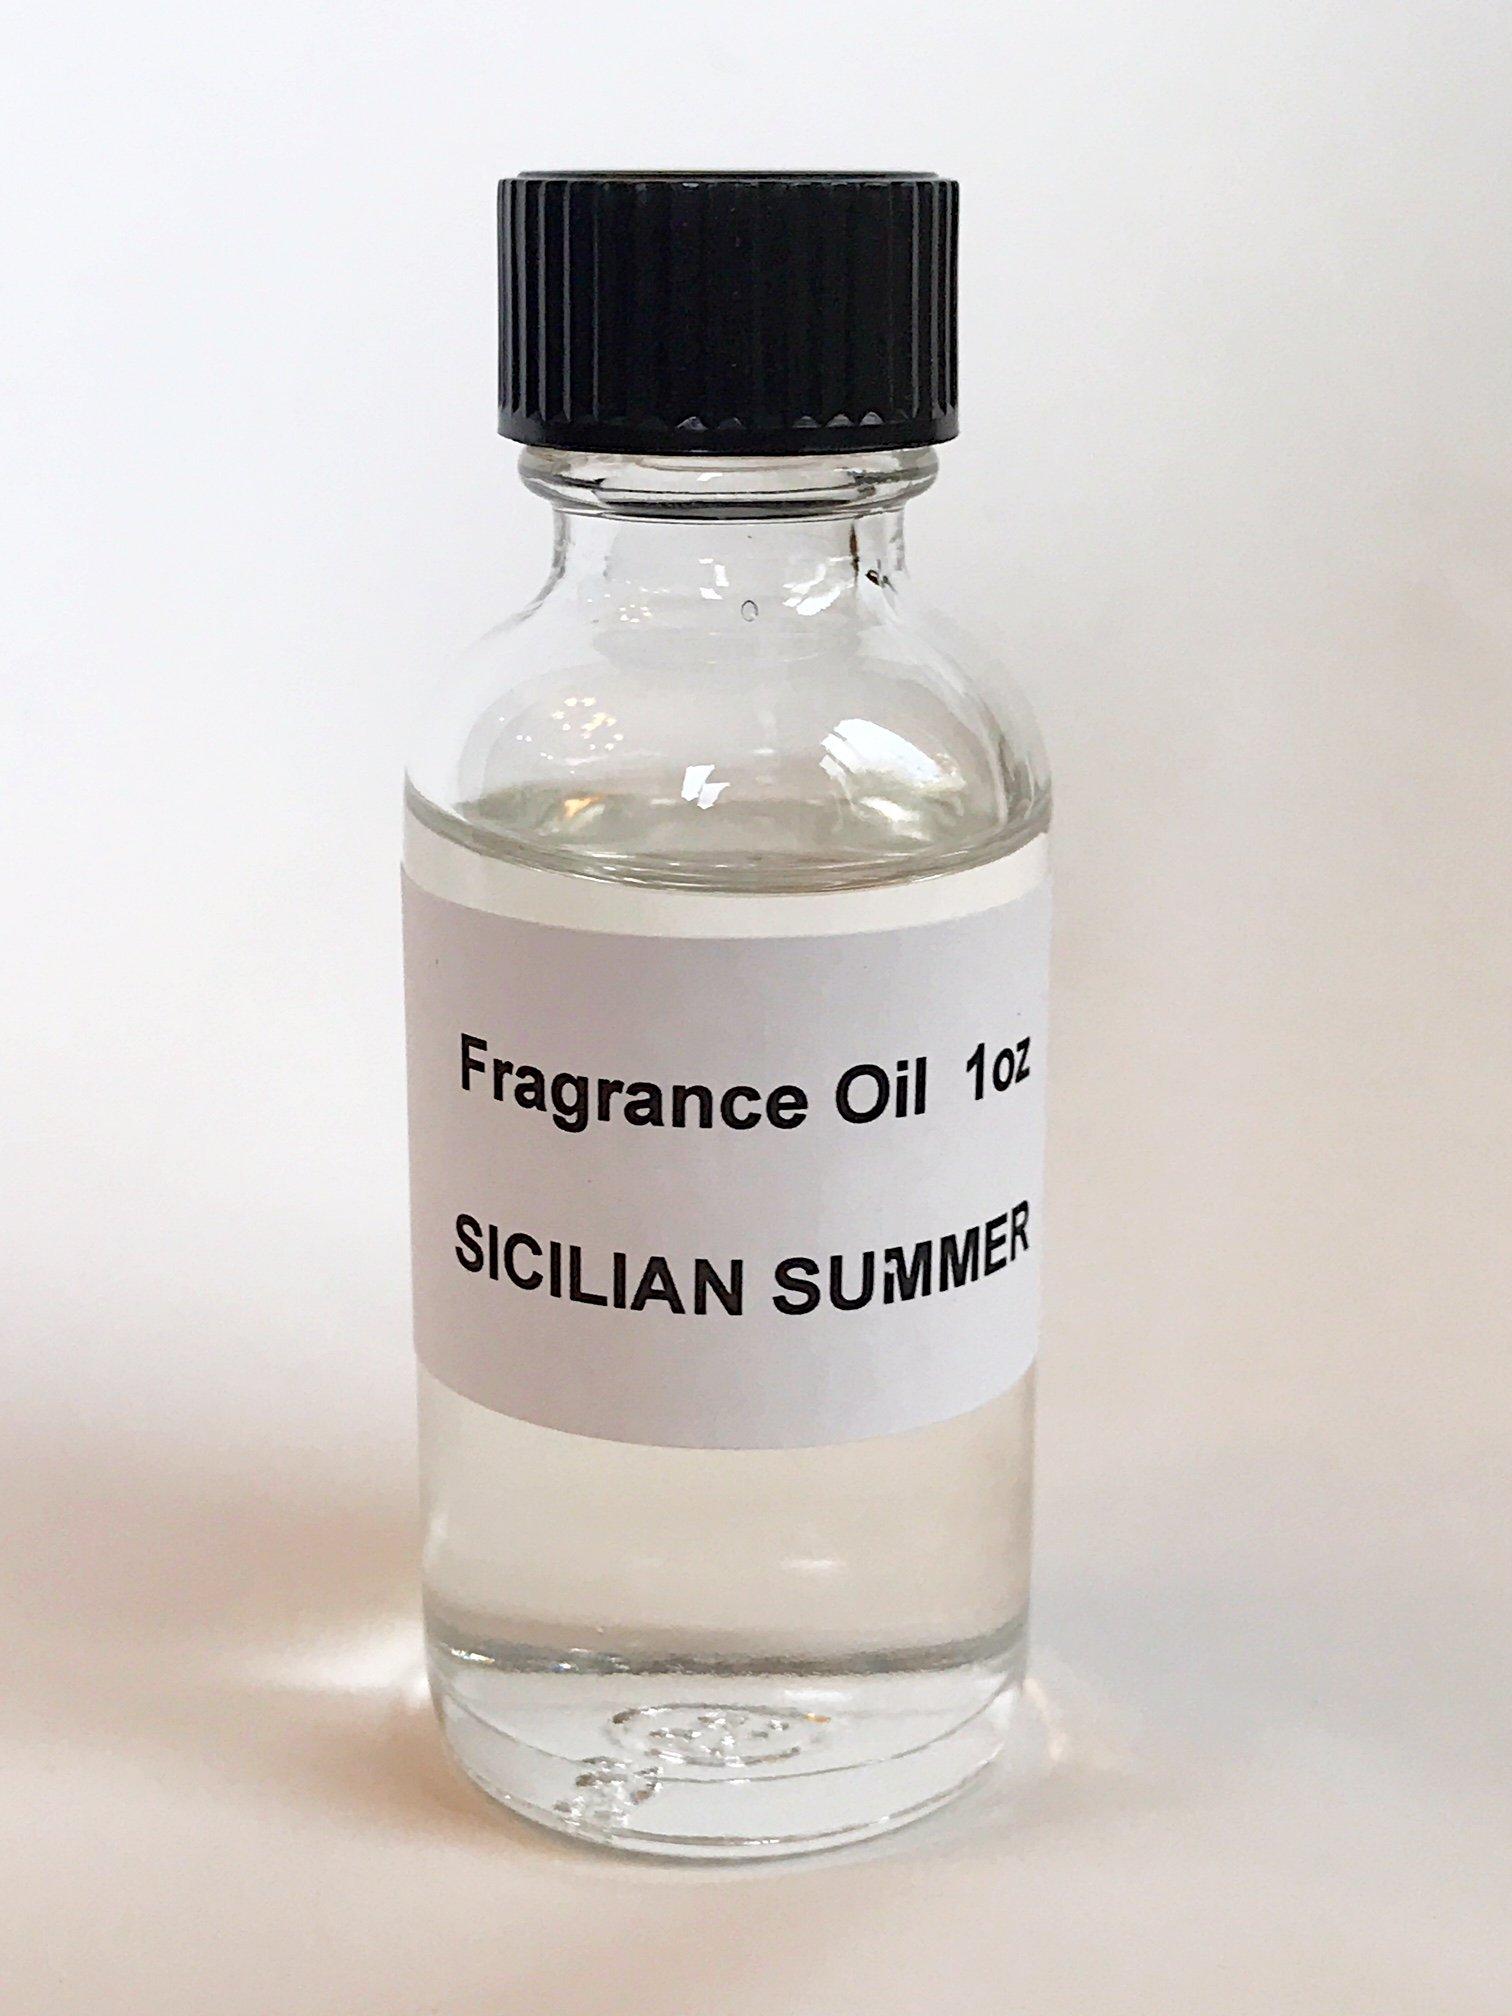 Sicilian Summer Fragrance Oil 1oz Body Oil Perfume Oil Made in USA